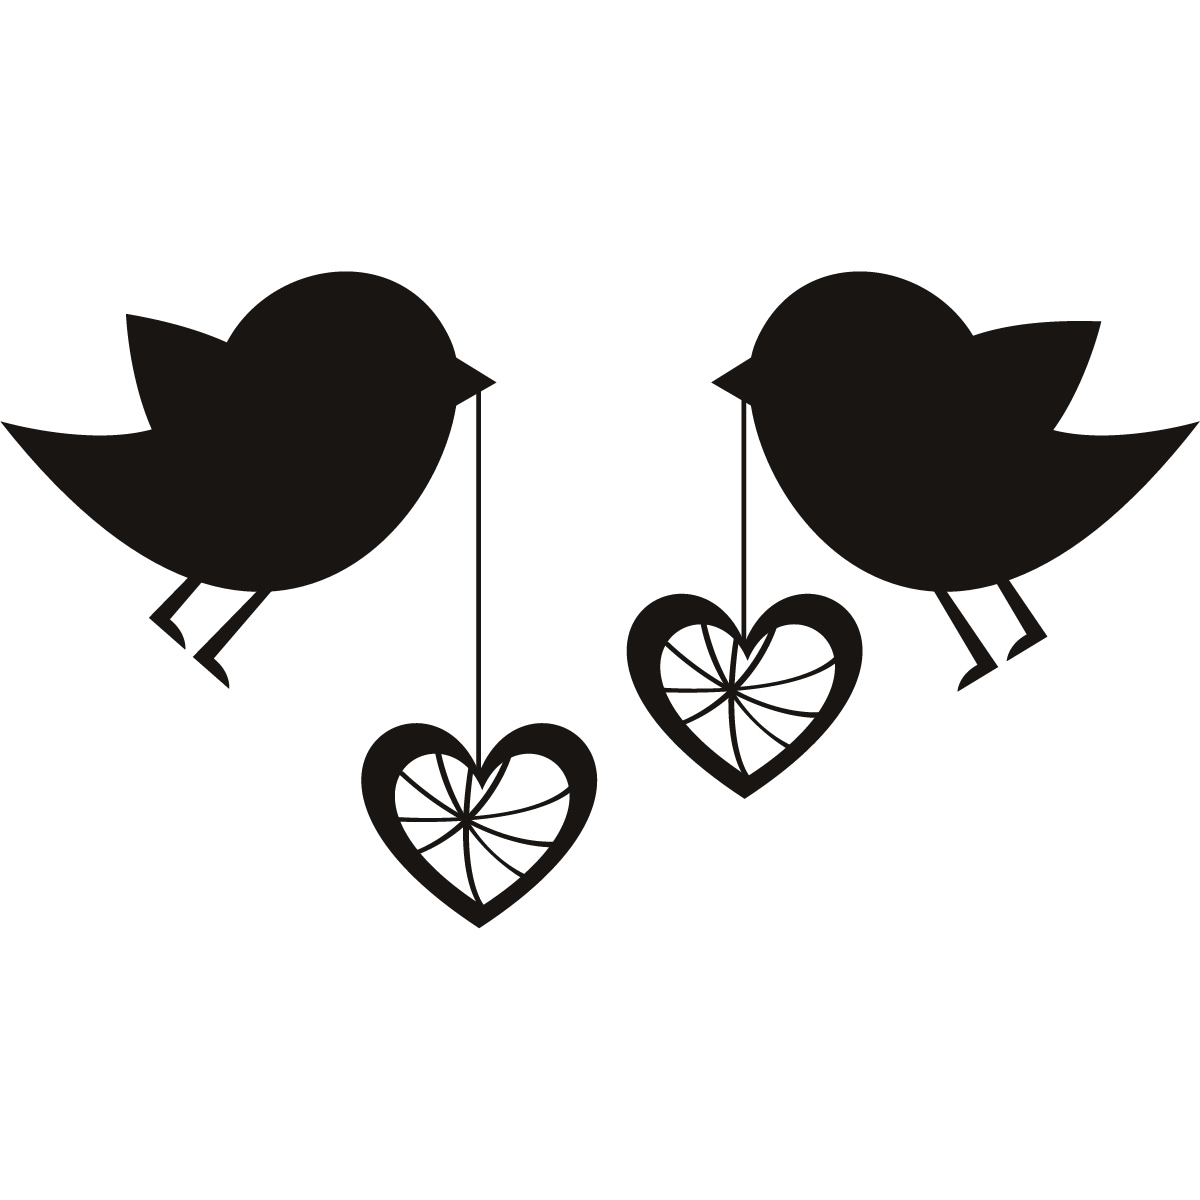 Love birds clipart 1 » Clipart Station.